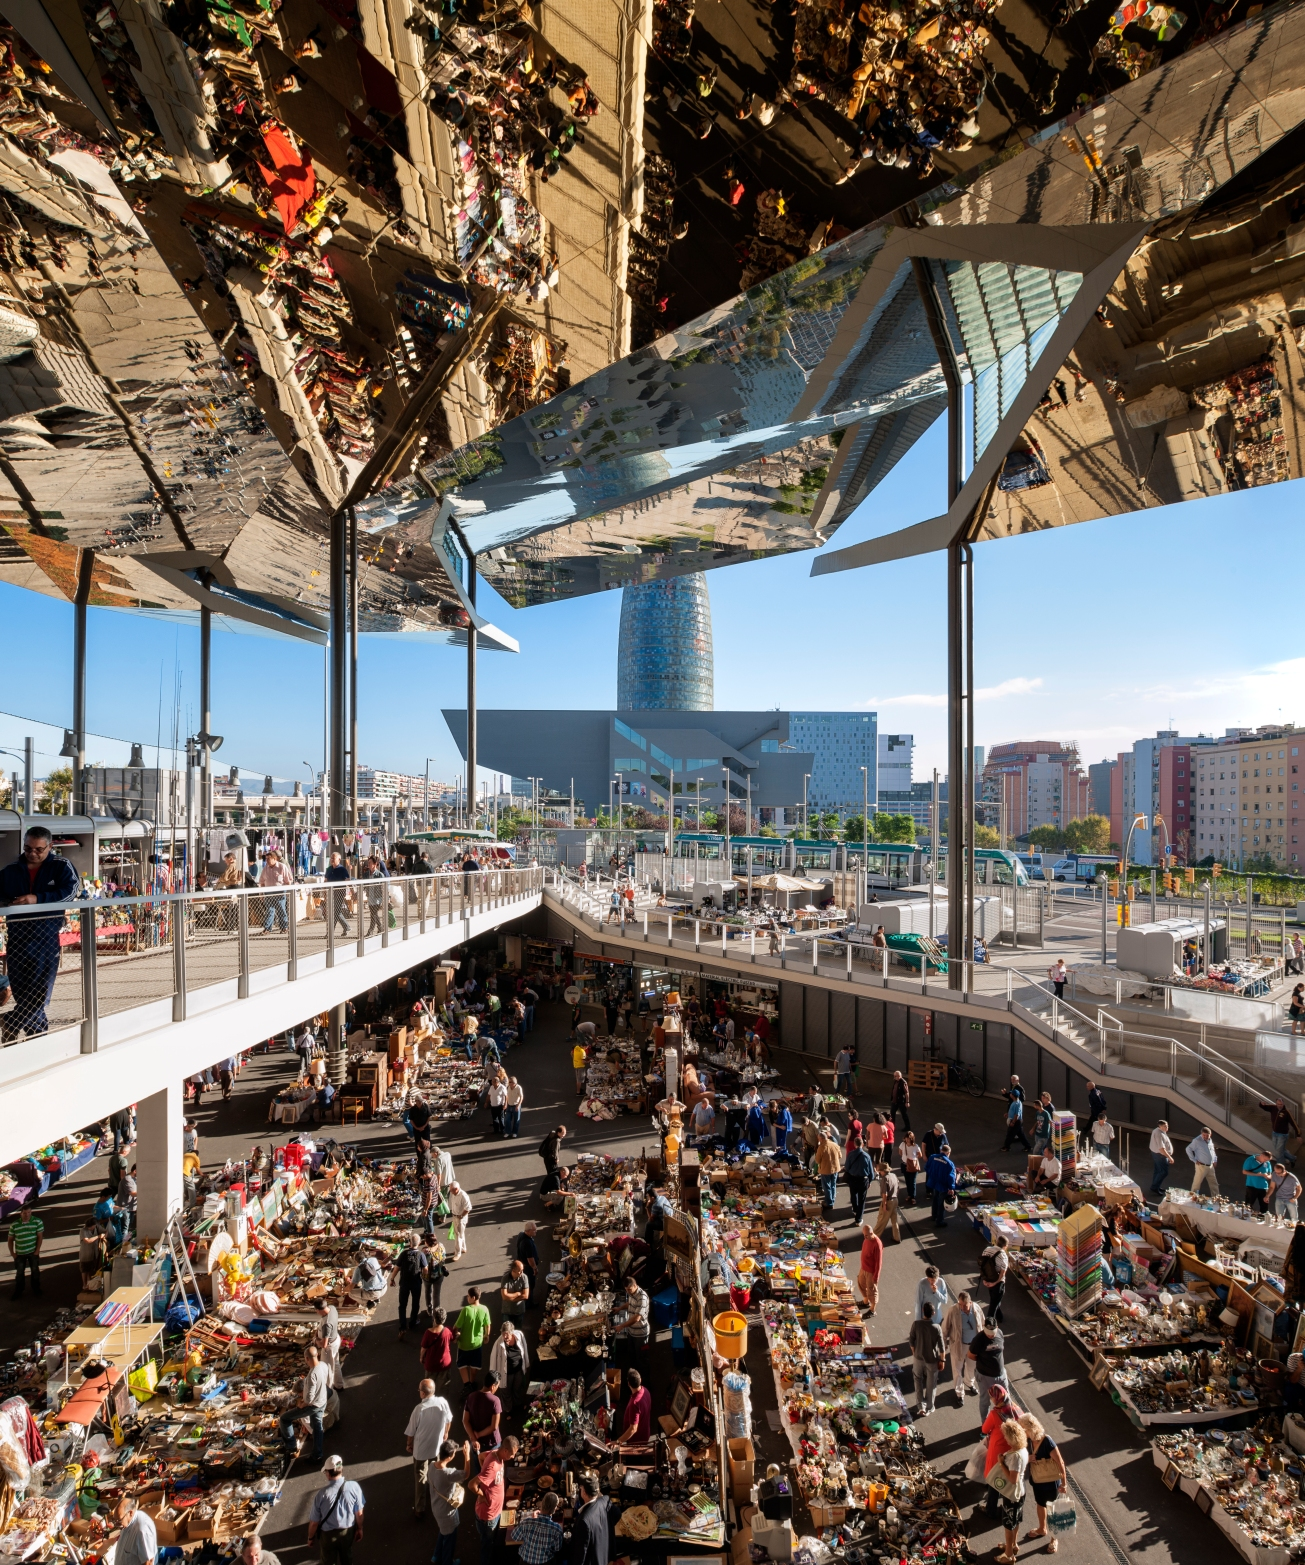 Encants Flea Market Category: Buildings in use  Photographer: Inigo Bujedo Aguirre  Architect: B720 Arquitectura  Location: Barcelona - Spain